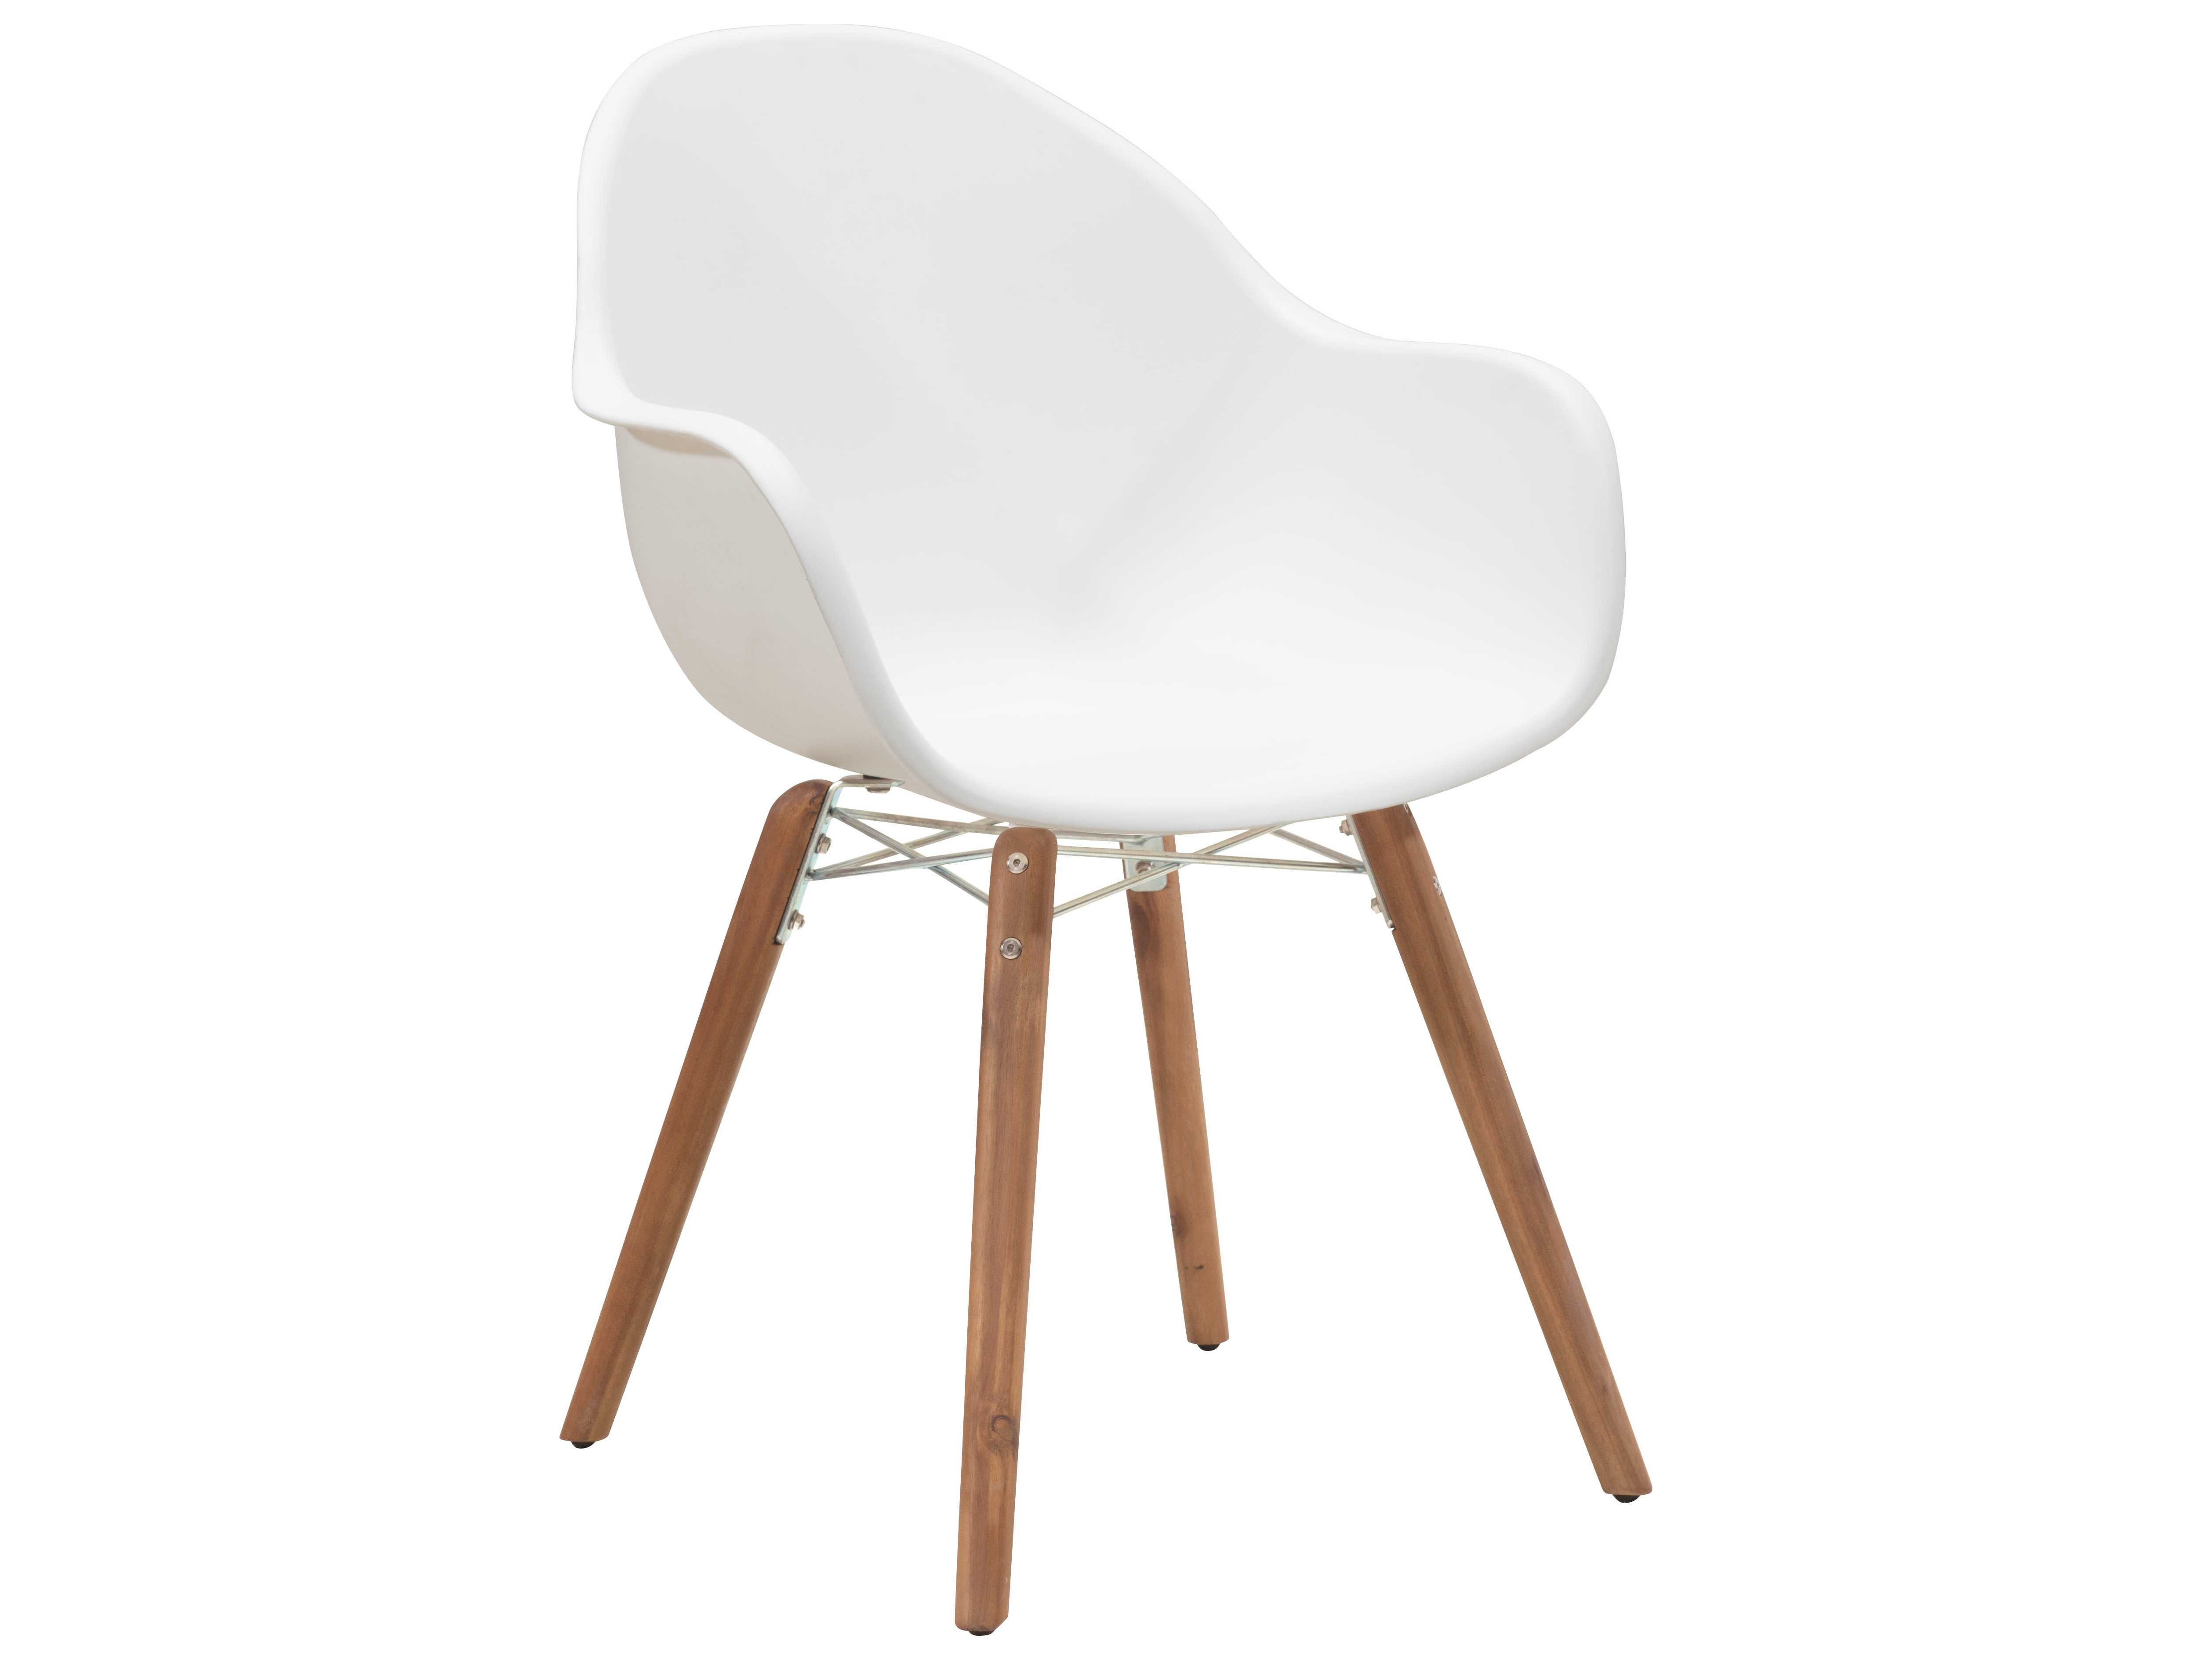 Fantastic Zuo Outdoor Tidal Acacia Wood Polypropylene Dining Chair In White Sold In 4 Sold In Multiples Of 4 Only Gmtry Best Dining Table And Chair Ideas Images Gmtryco